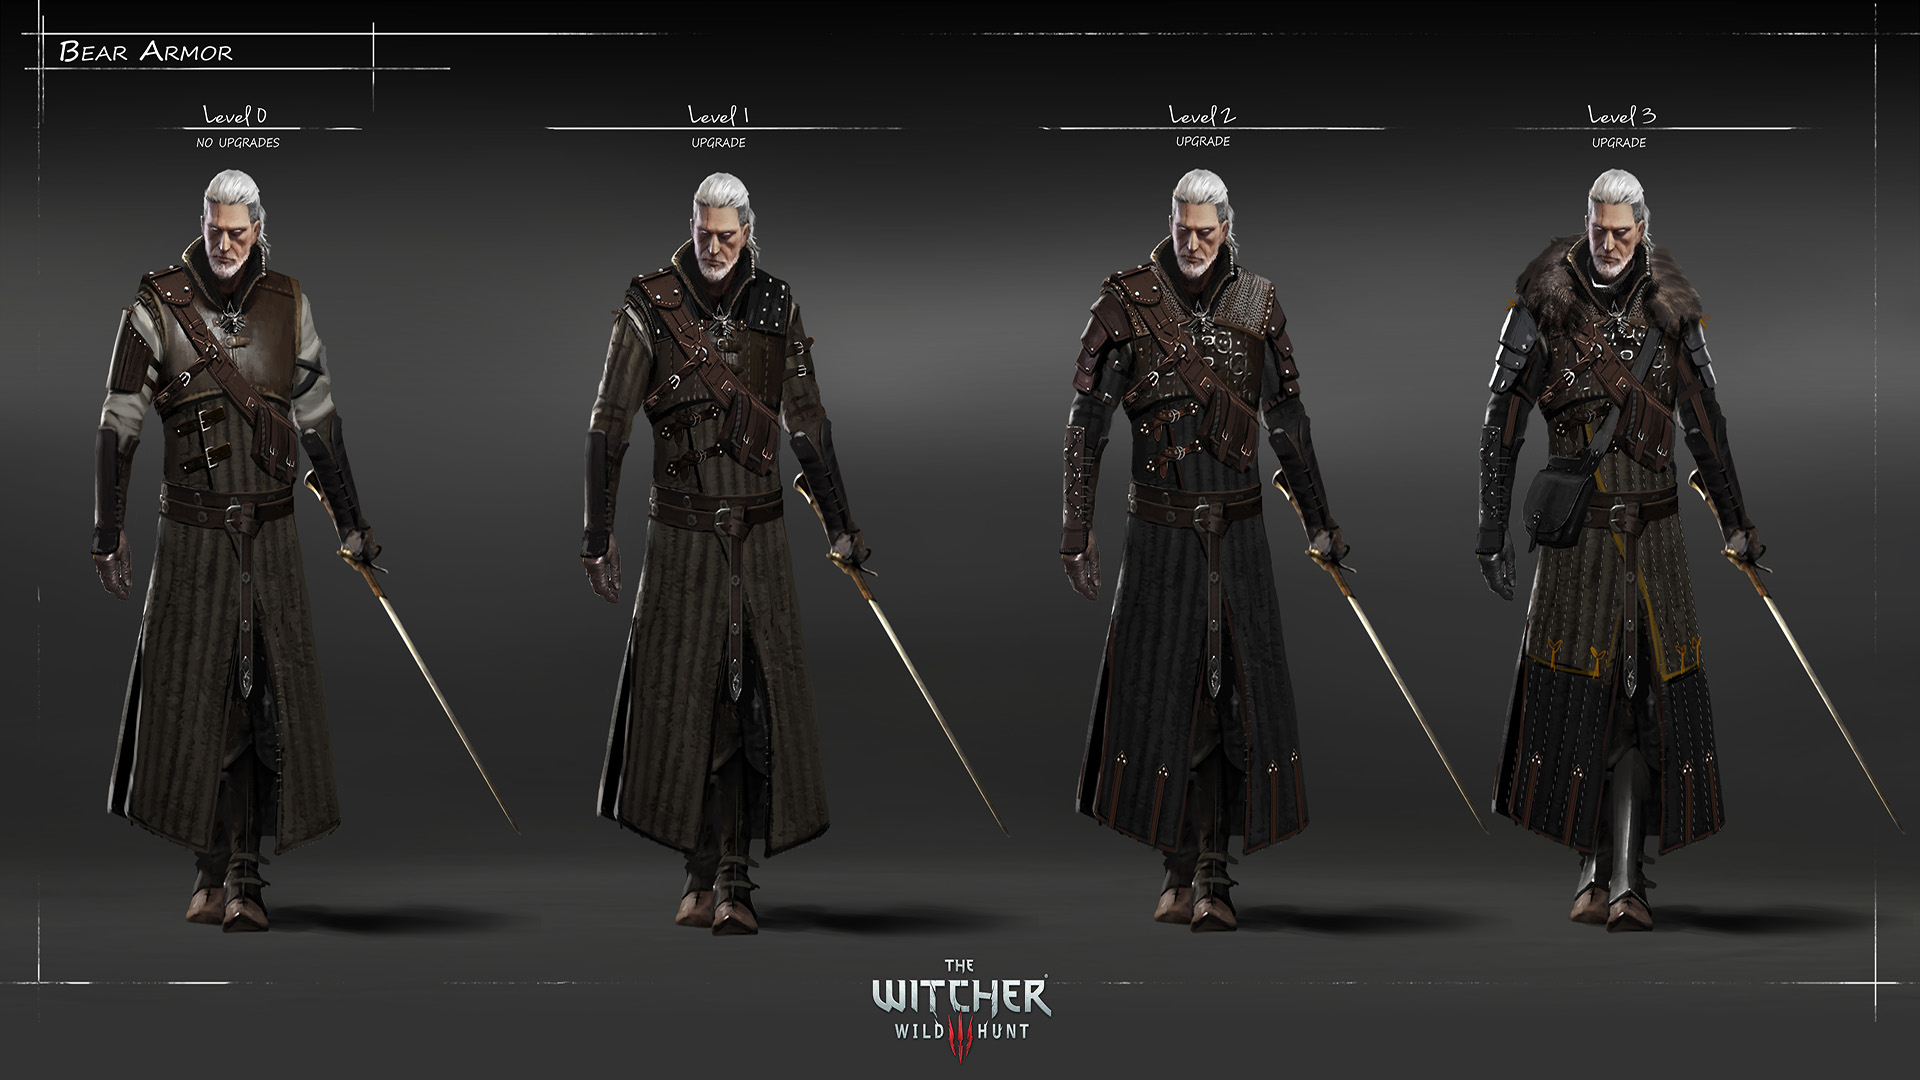 witcher-3-armor - Gosu Noob Gaming Guides - photo#5